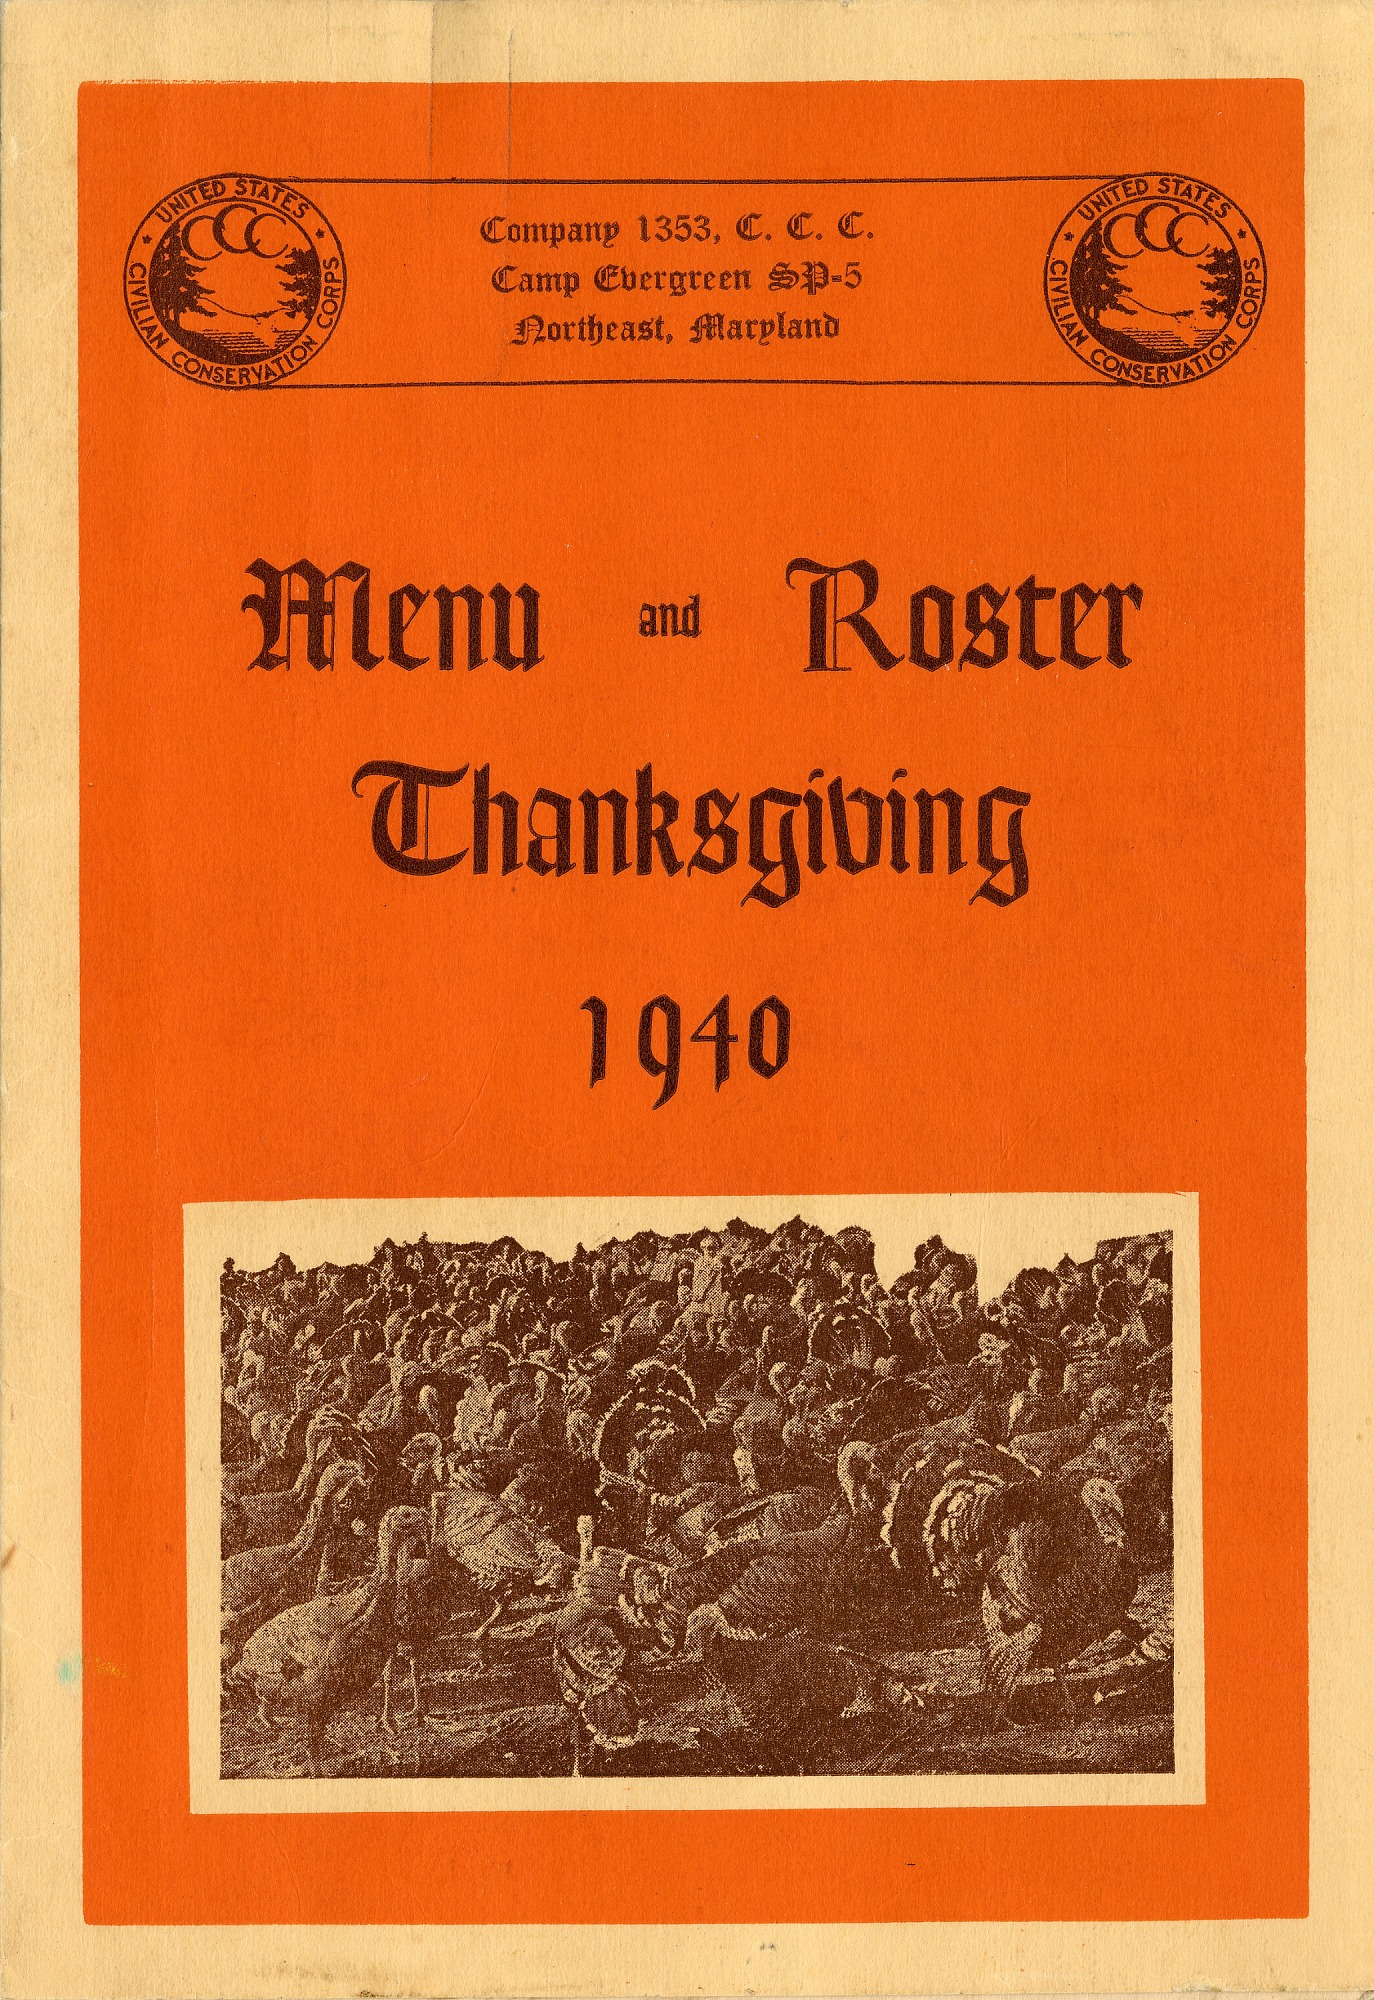 images for Thanksgiving menu and roster cover from Company 1353, Cam Evergreen SP-5, Northeast, Maryland, 1940